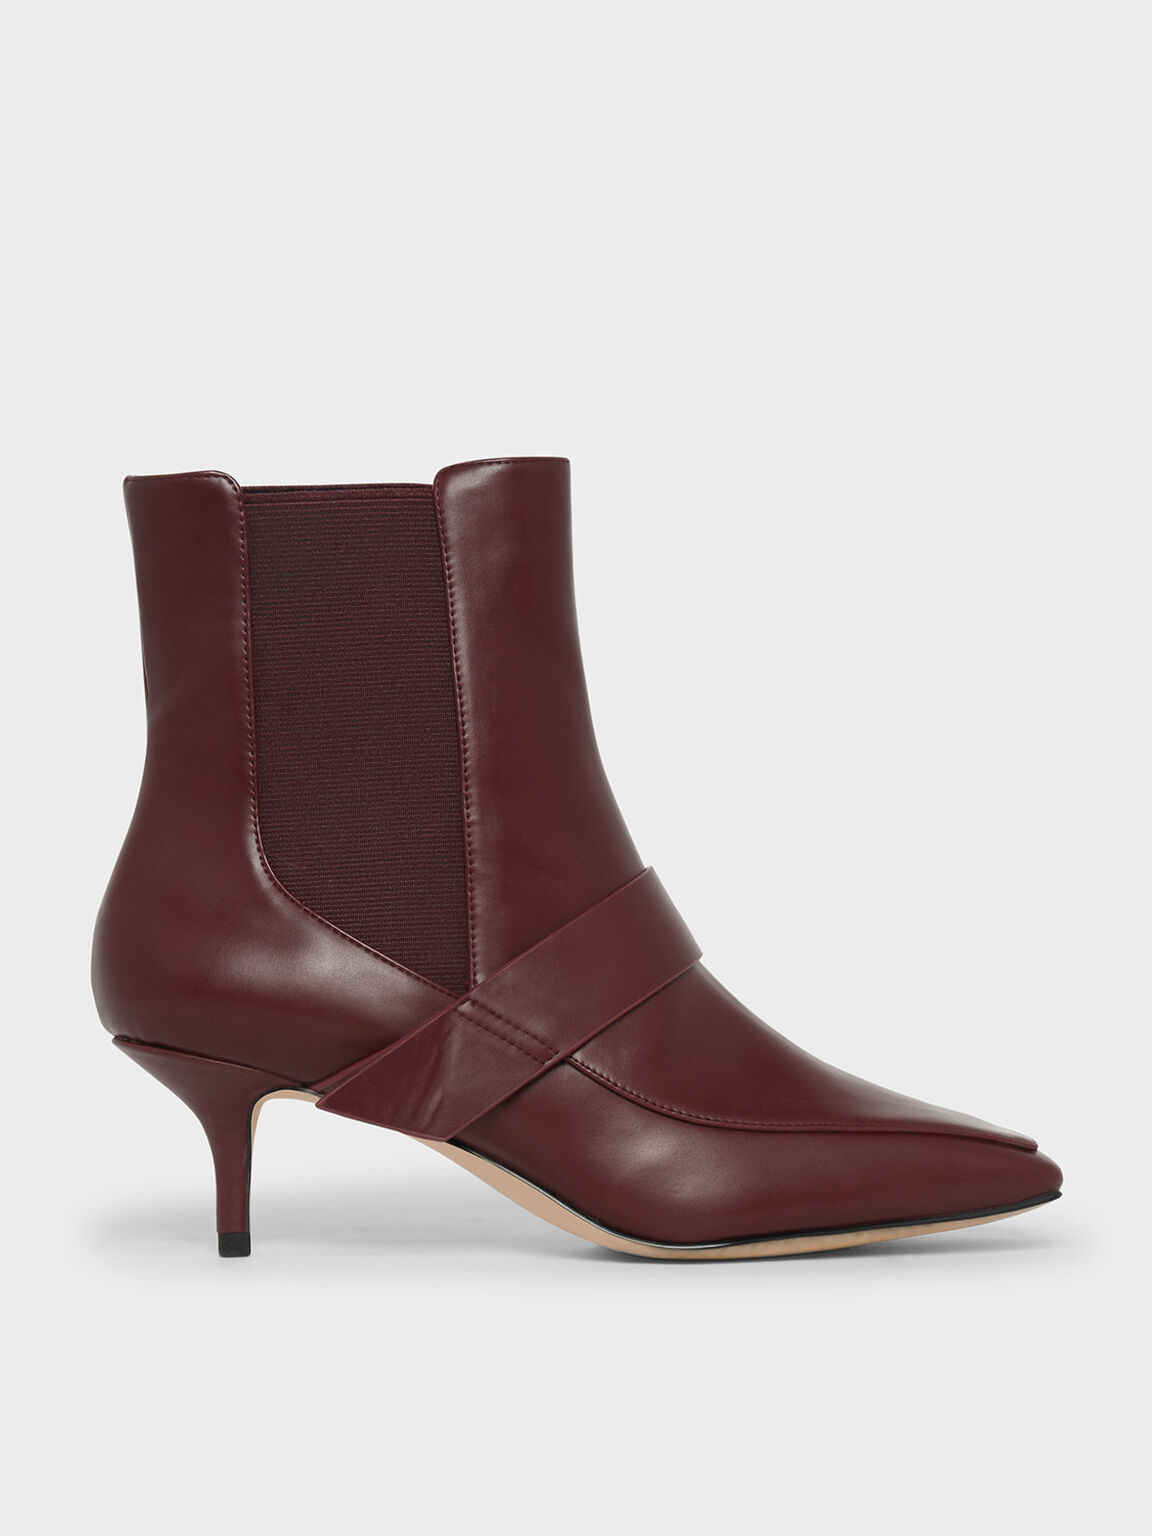 Square Toe Kitten Heel Boots, Burgundy, hi-res